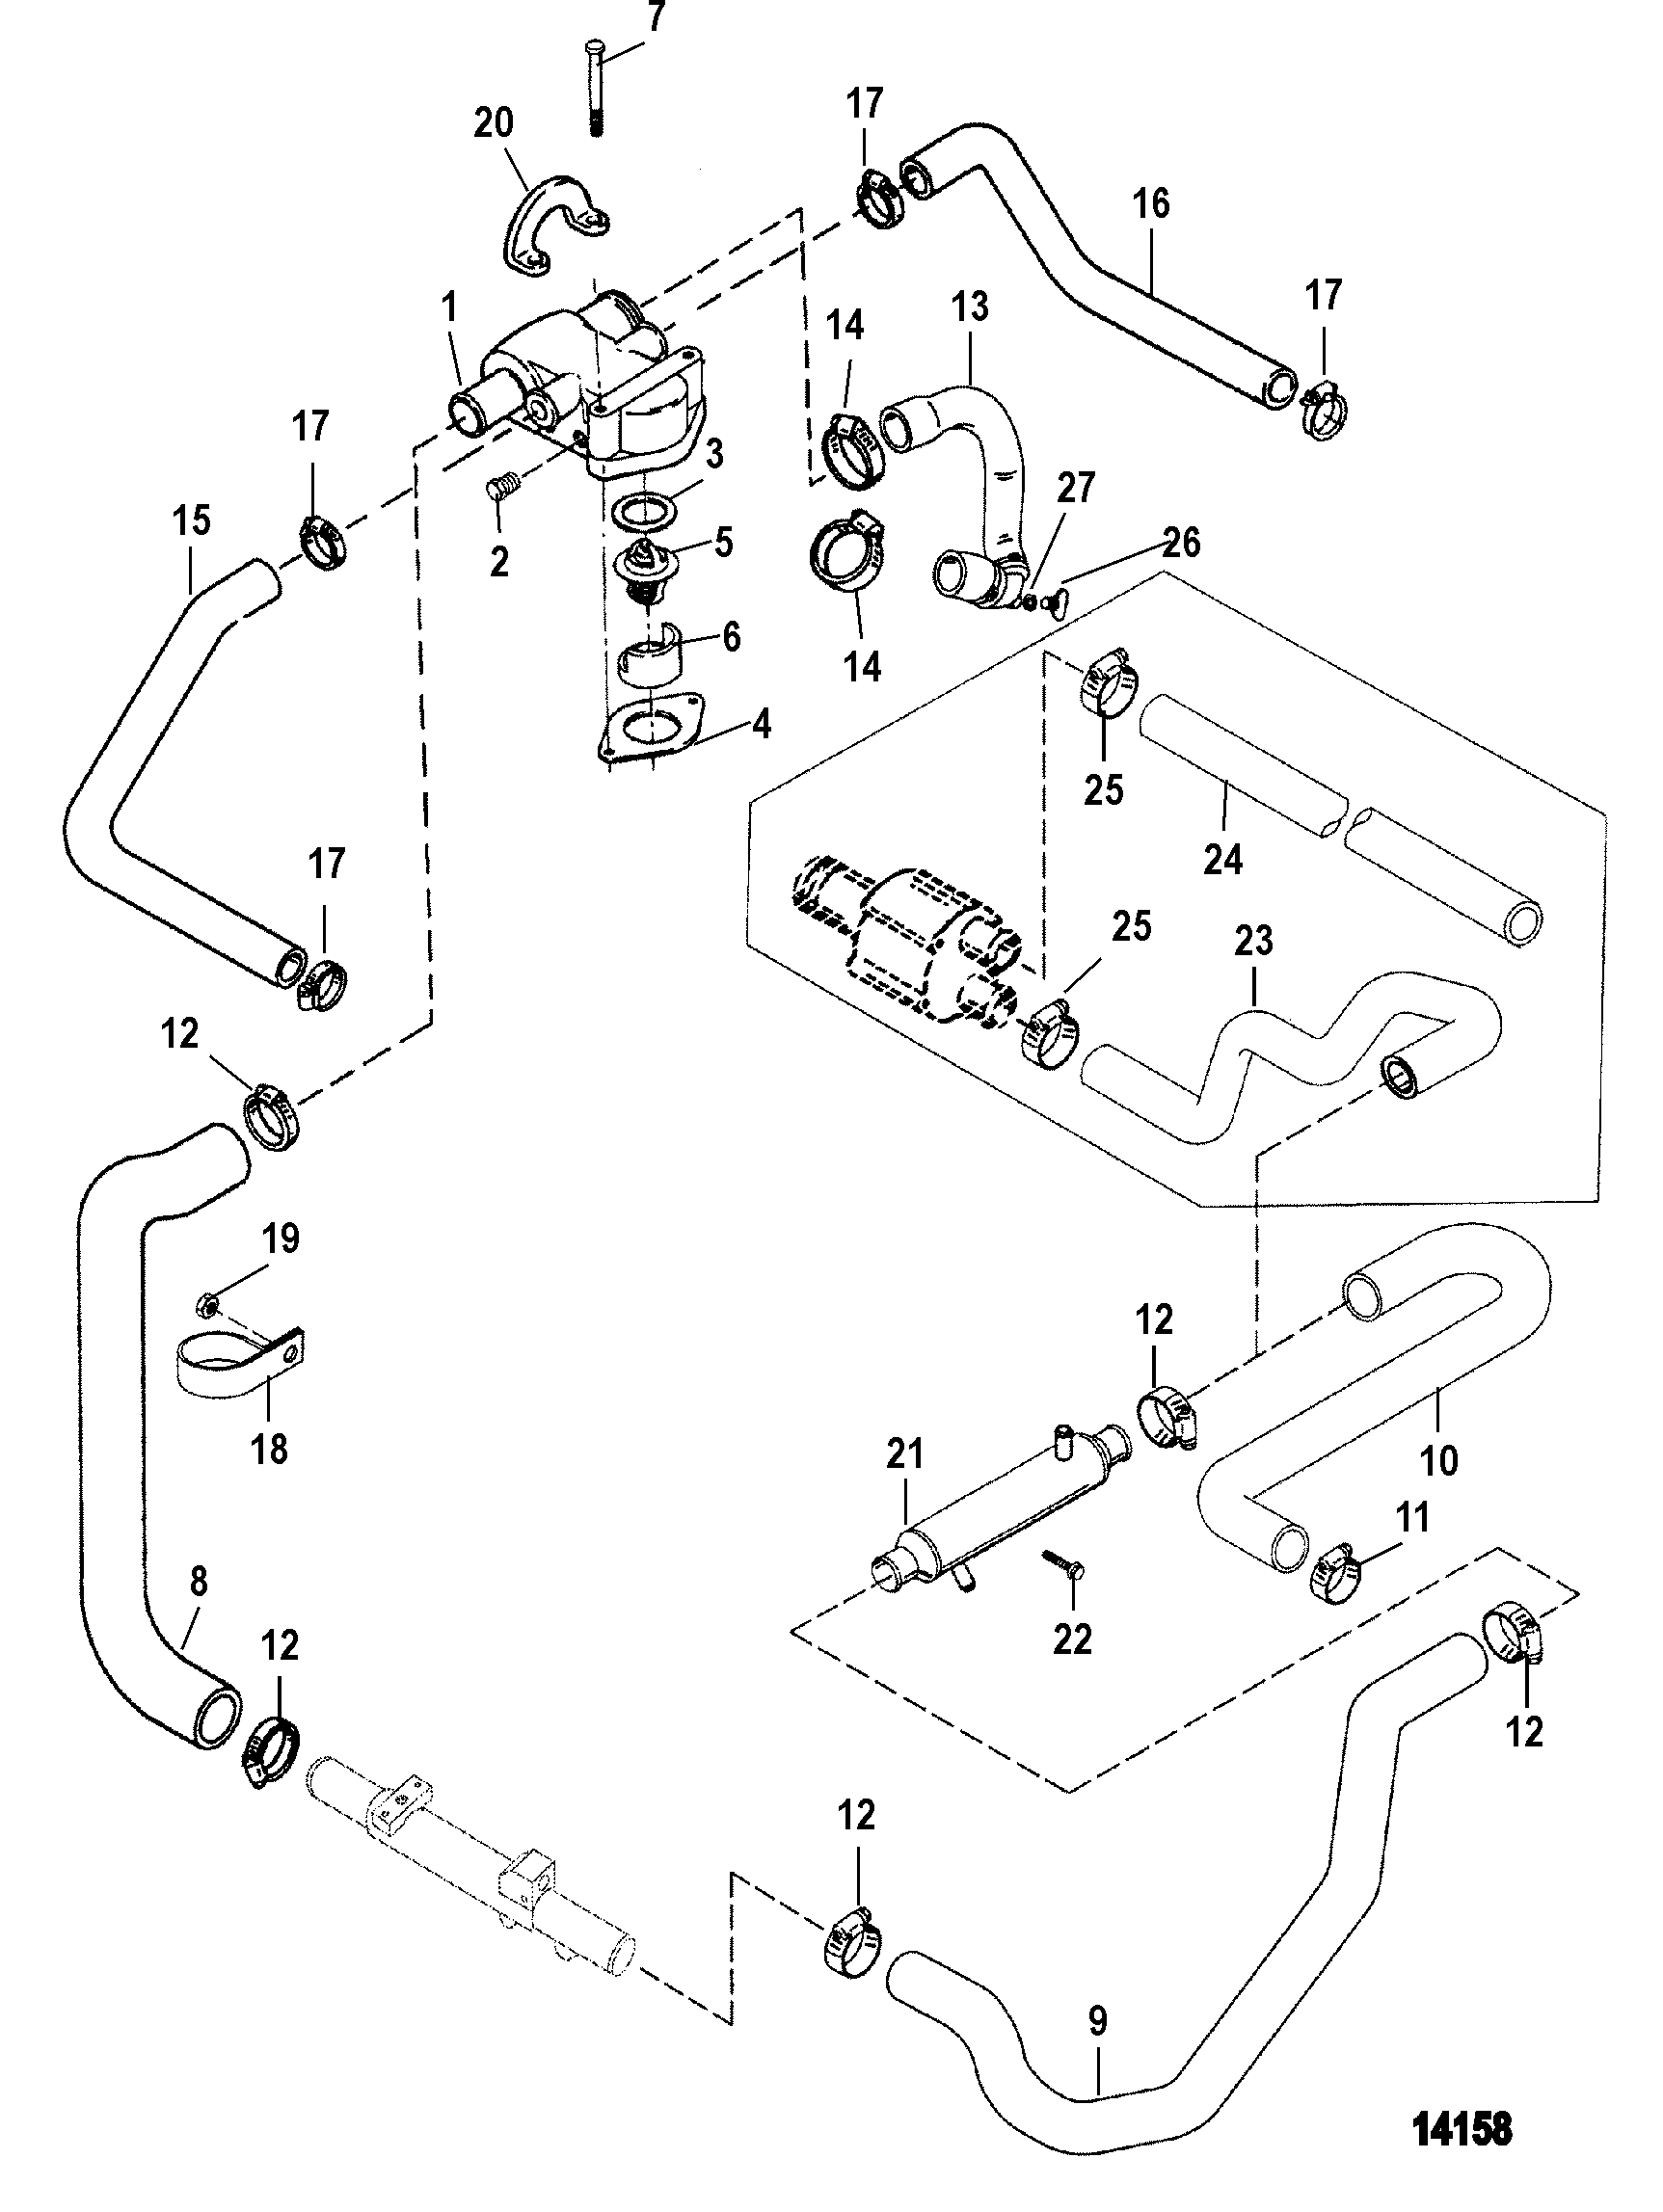 Engine Wiring Diagram For Durango Hemi 5 7